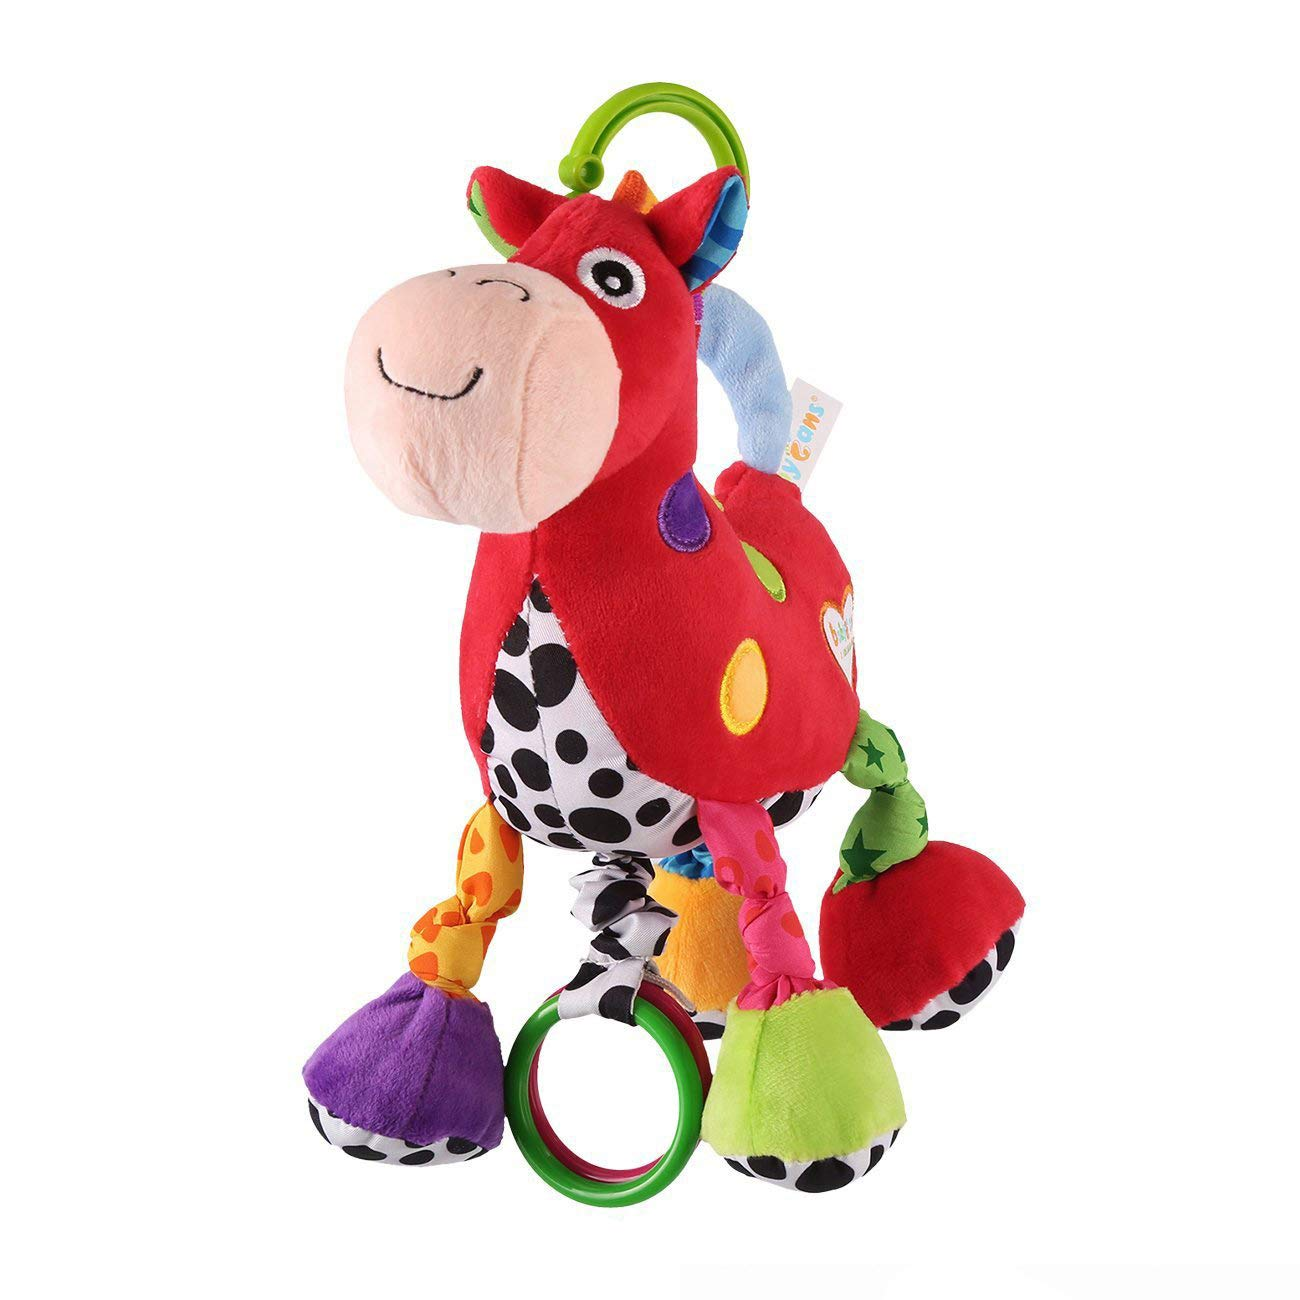 Baby Stroller Hanging Toy, Cartoon Horse Music Crib Toy, Plush Pull Bell Sensory Car Seat Activity Toy for Infant Toddler Baby Boys Girls Kids Children by Jepeak